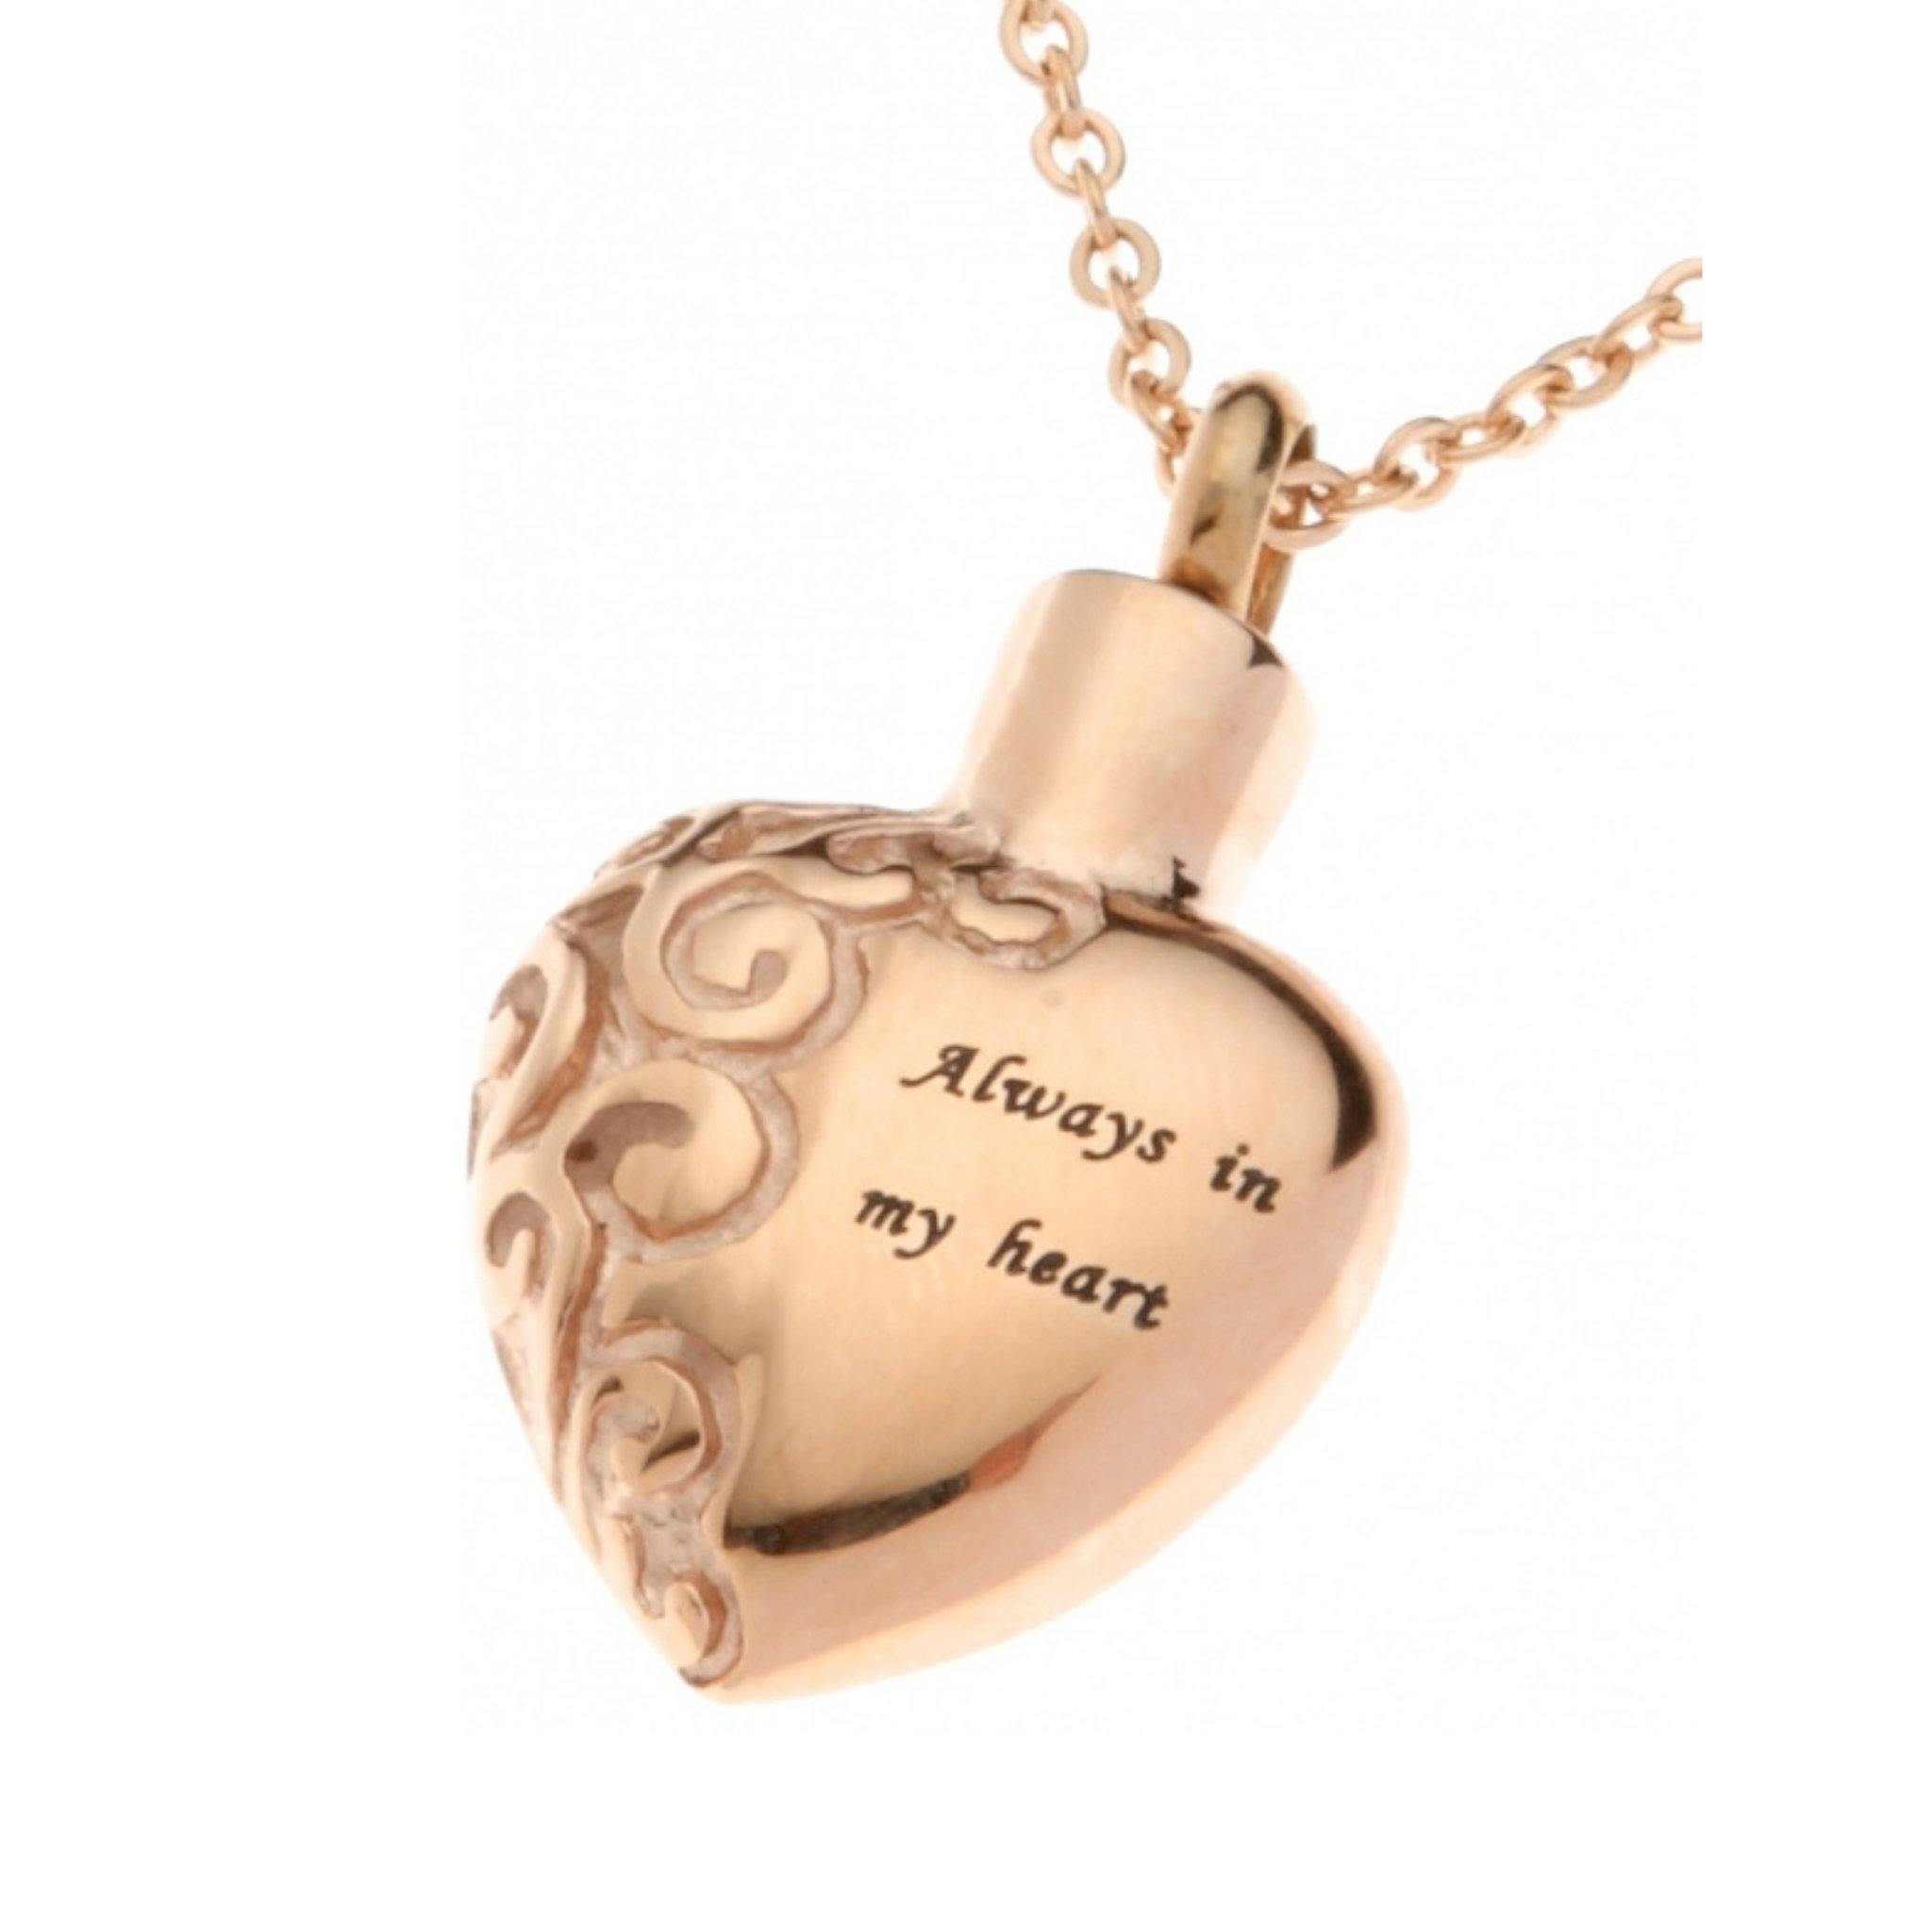 Chelsea Cremation Ashes Pendant Design 13B - Urns UK